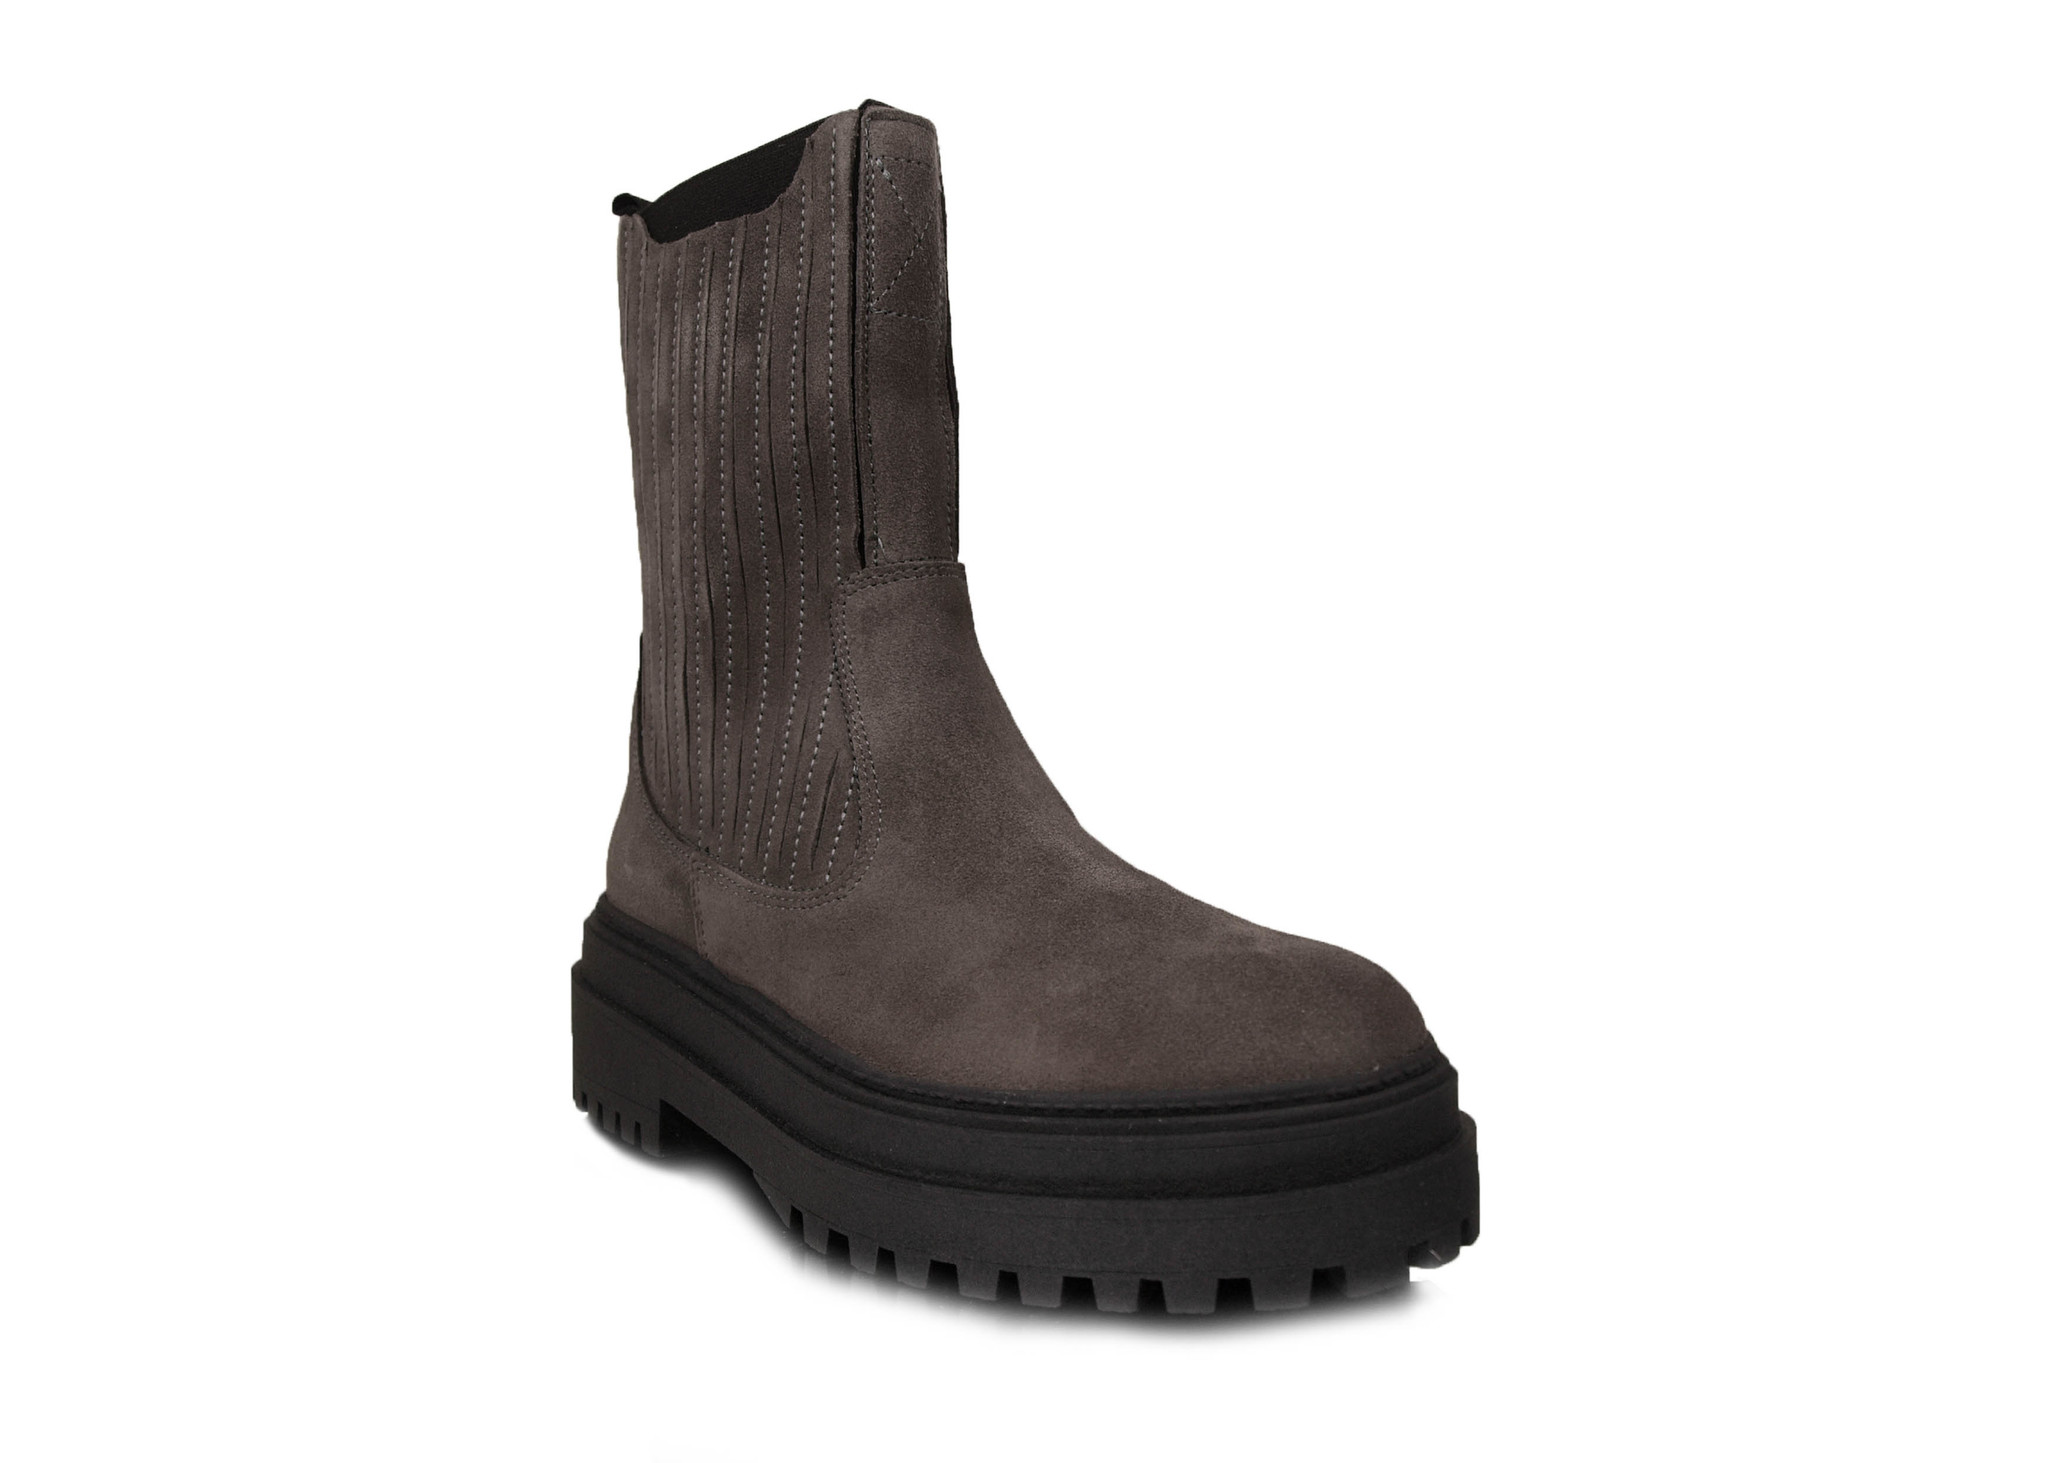 DWRS DWRS Chelsea Boot Blackpool B3130-01 Taupe